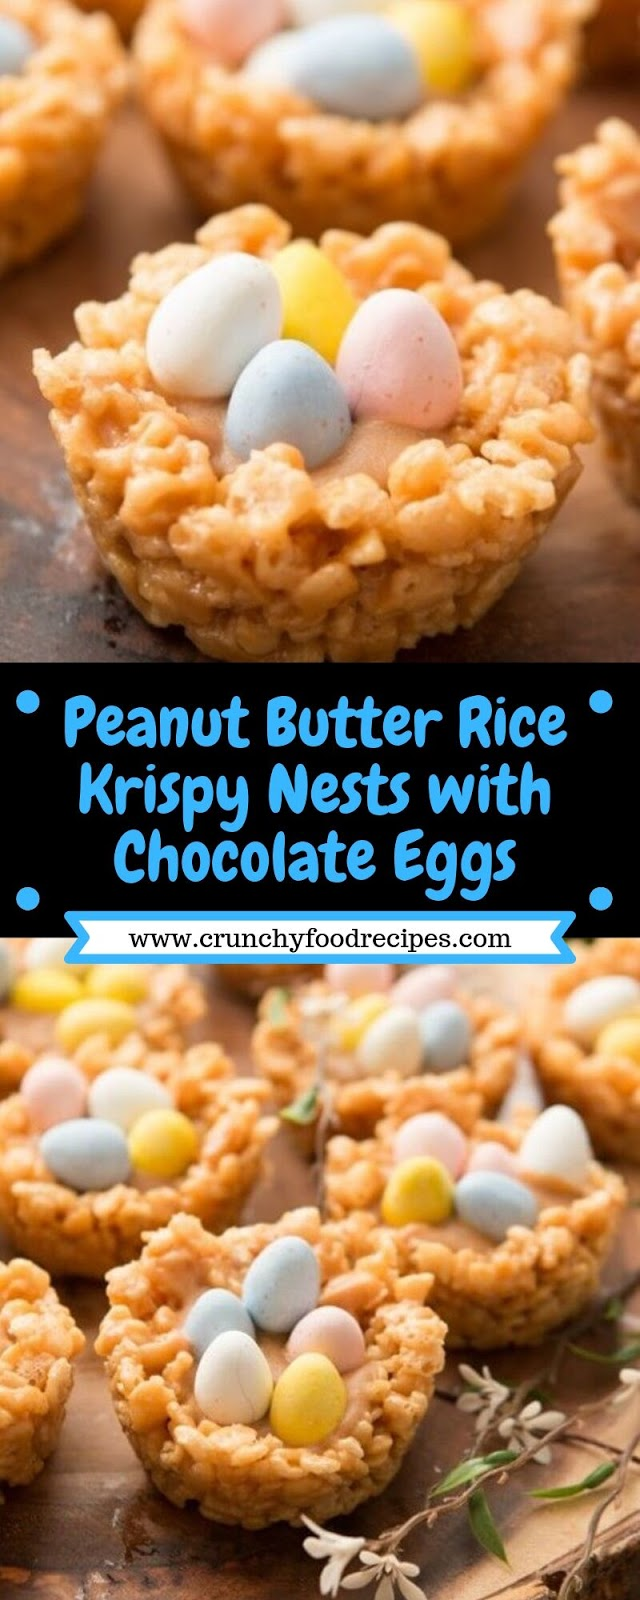 Peanut Butter Rice Krispy Nests with Chocolate Eggs